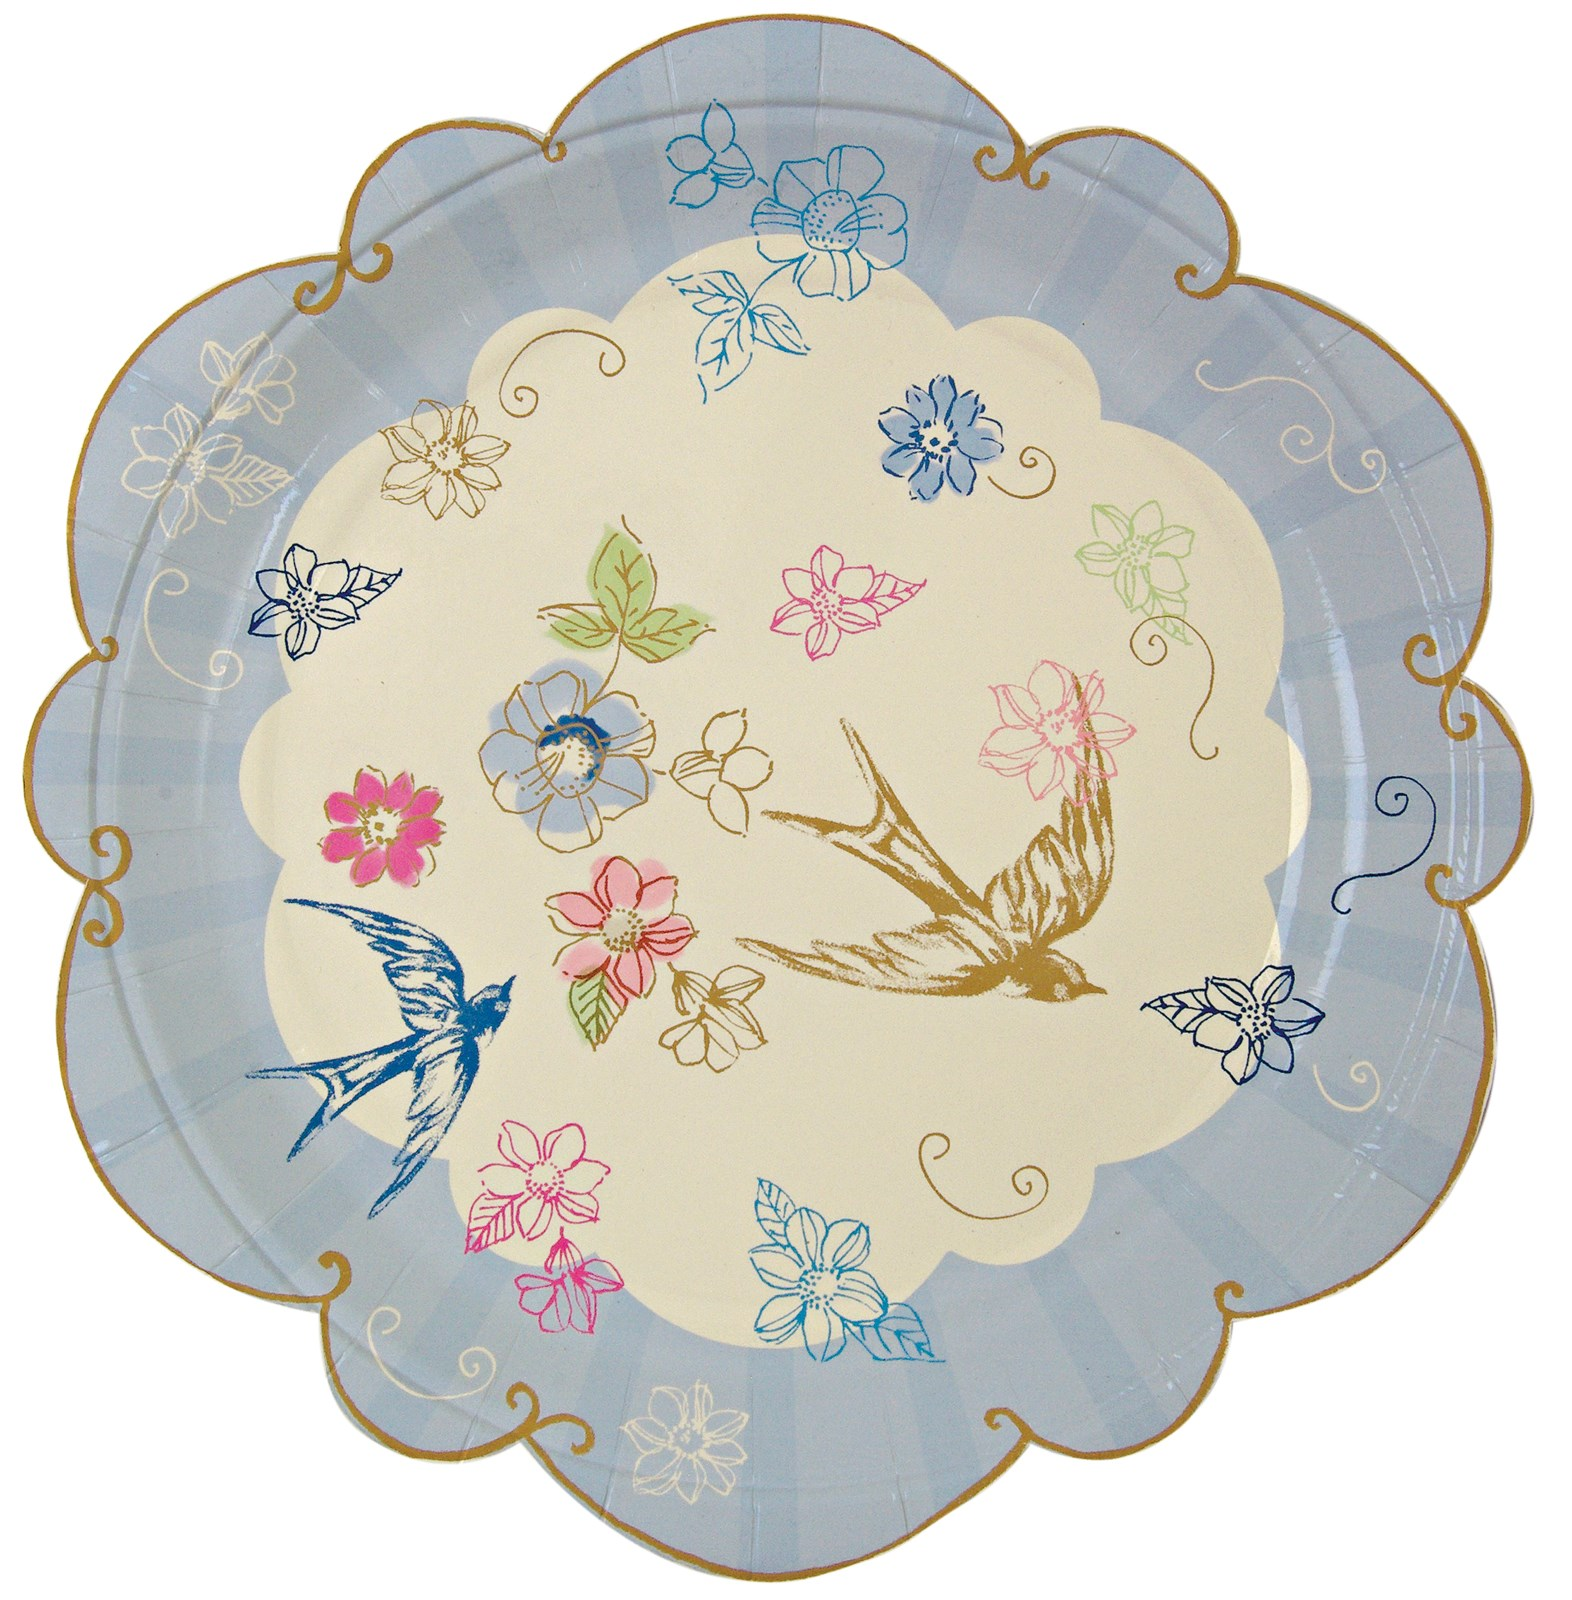 Image of Love in the Afternoon Dessert Plates (12)